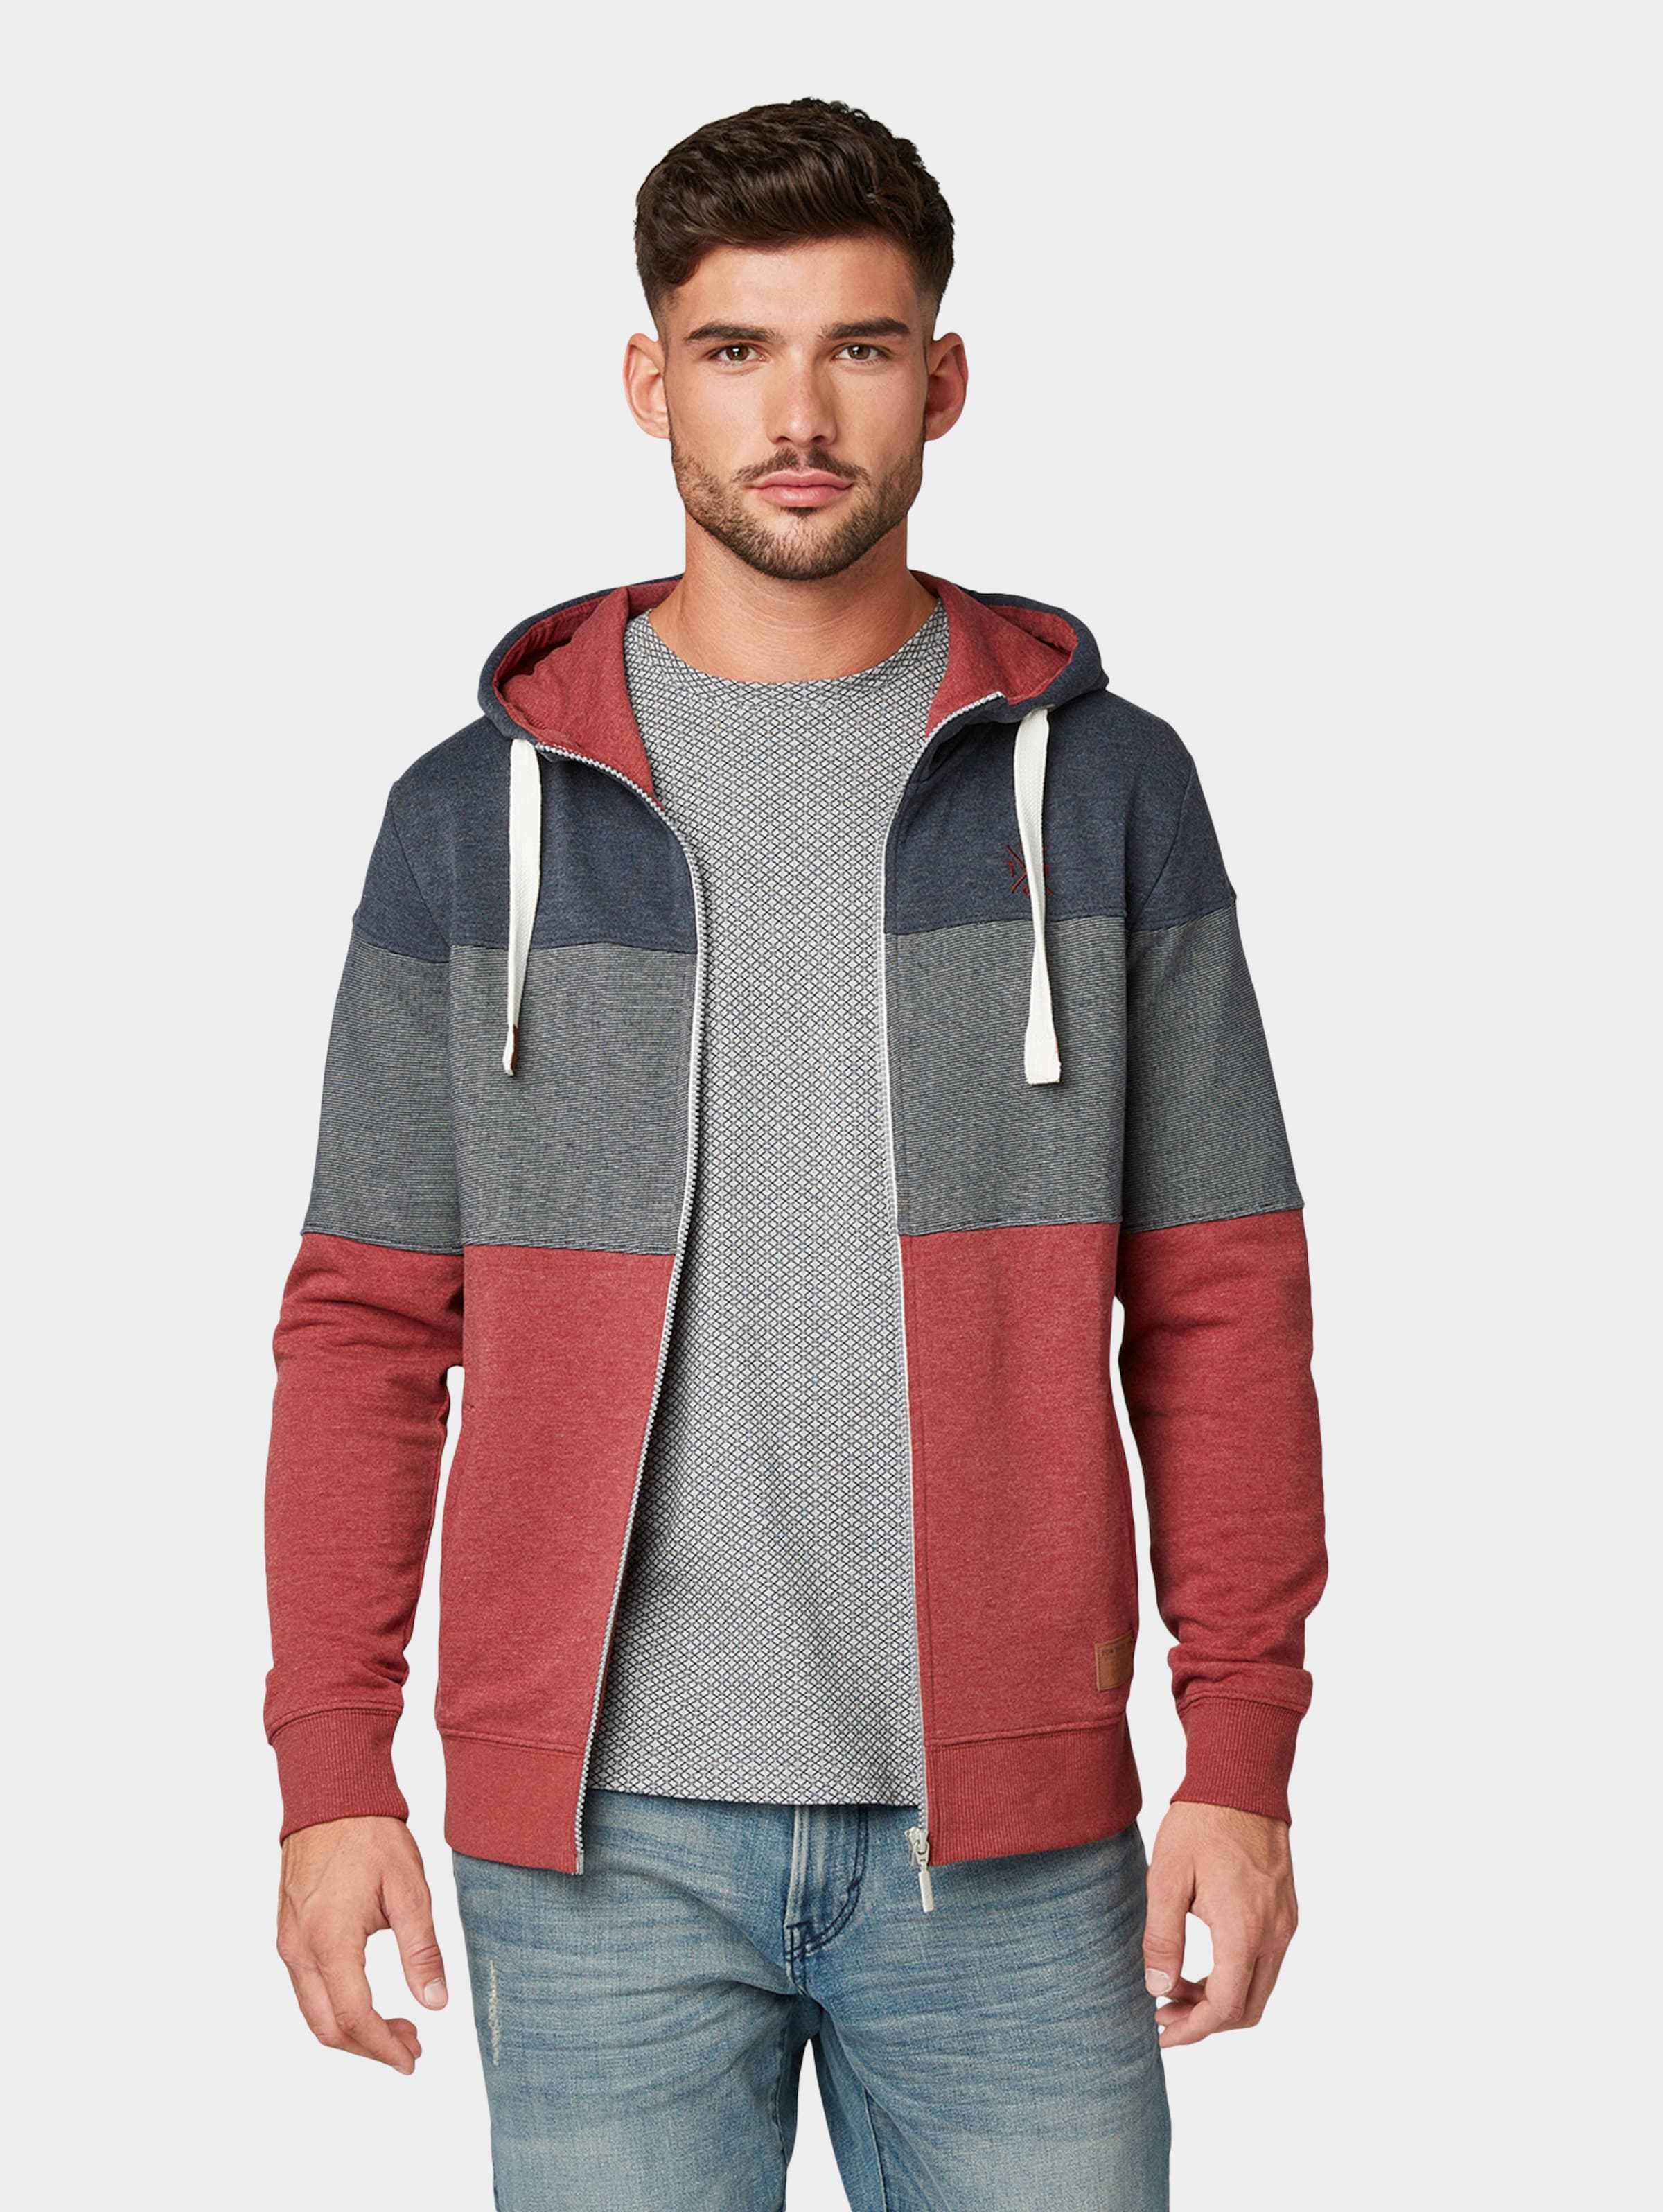 Tom In Sweatjacke Tailor Rot GrauDunkelgrau Ybg7f6y